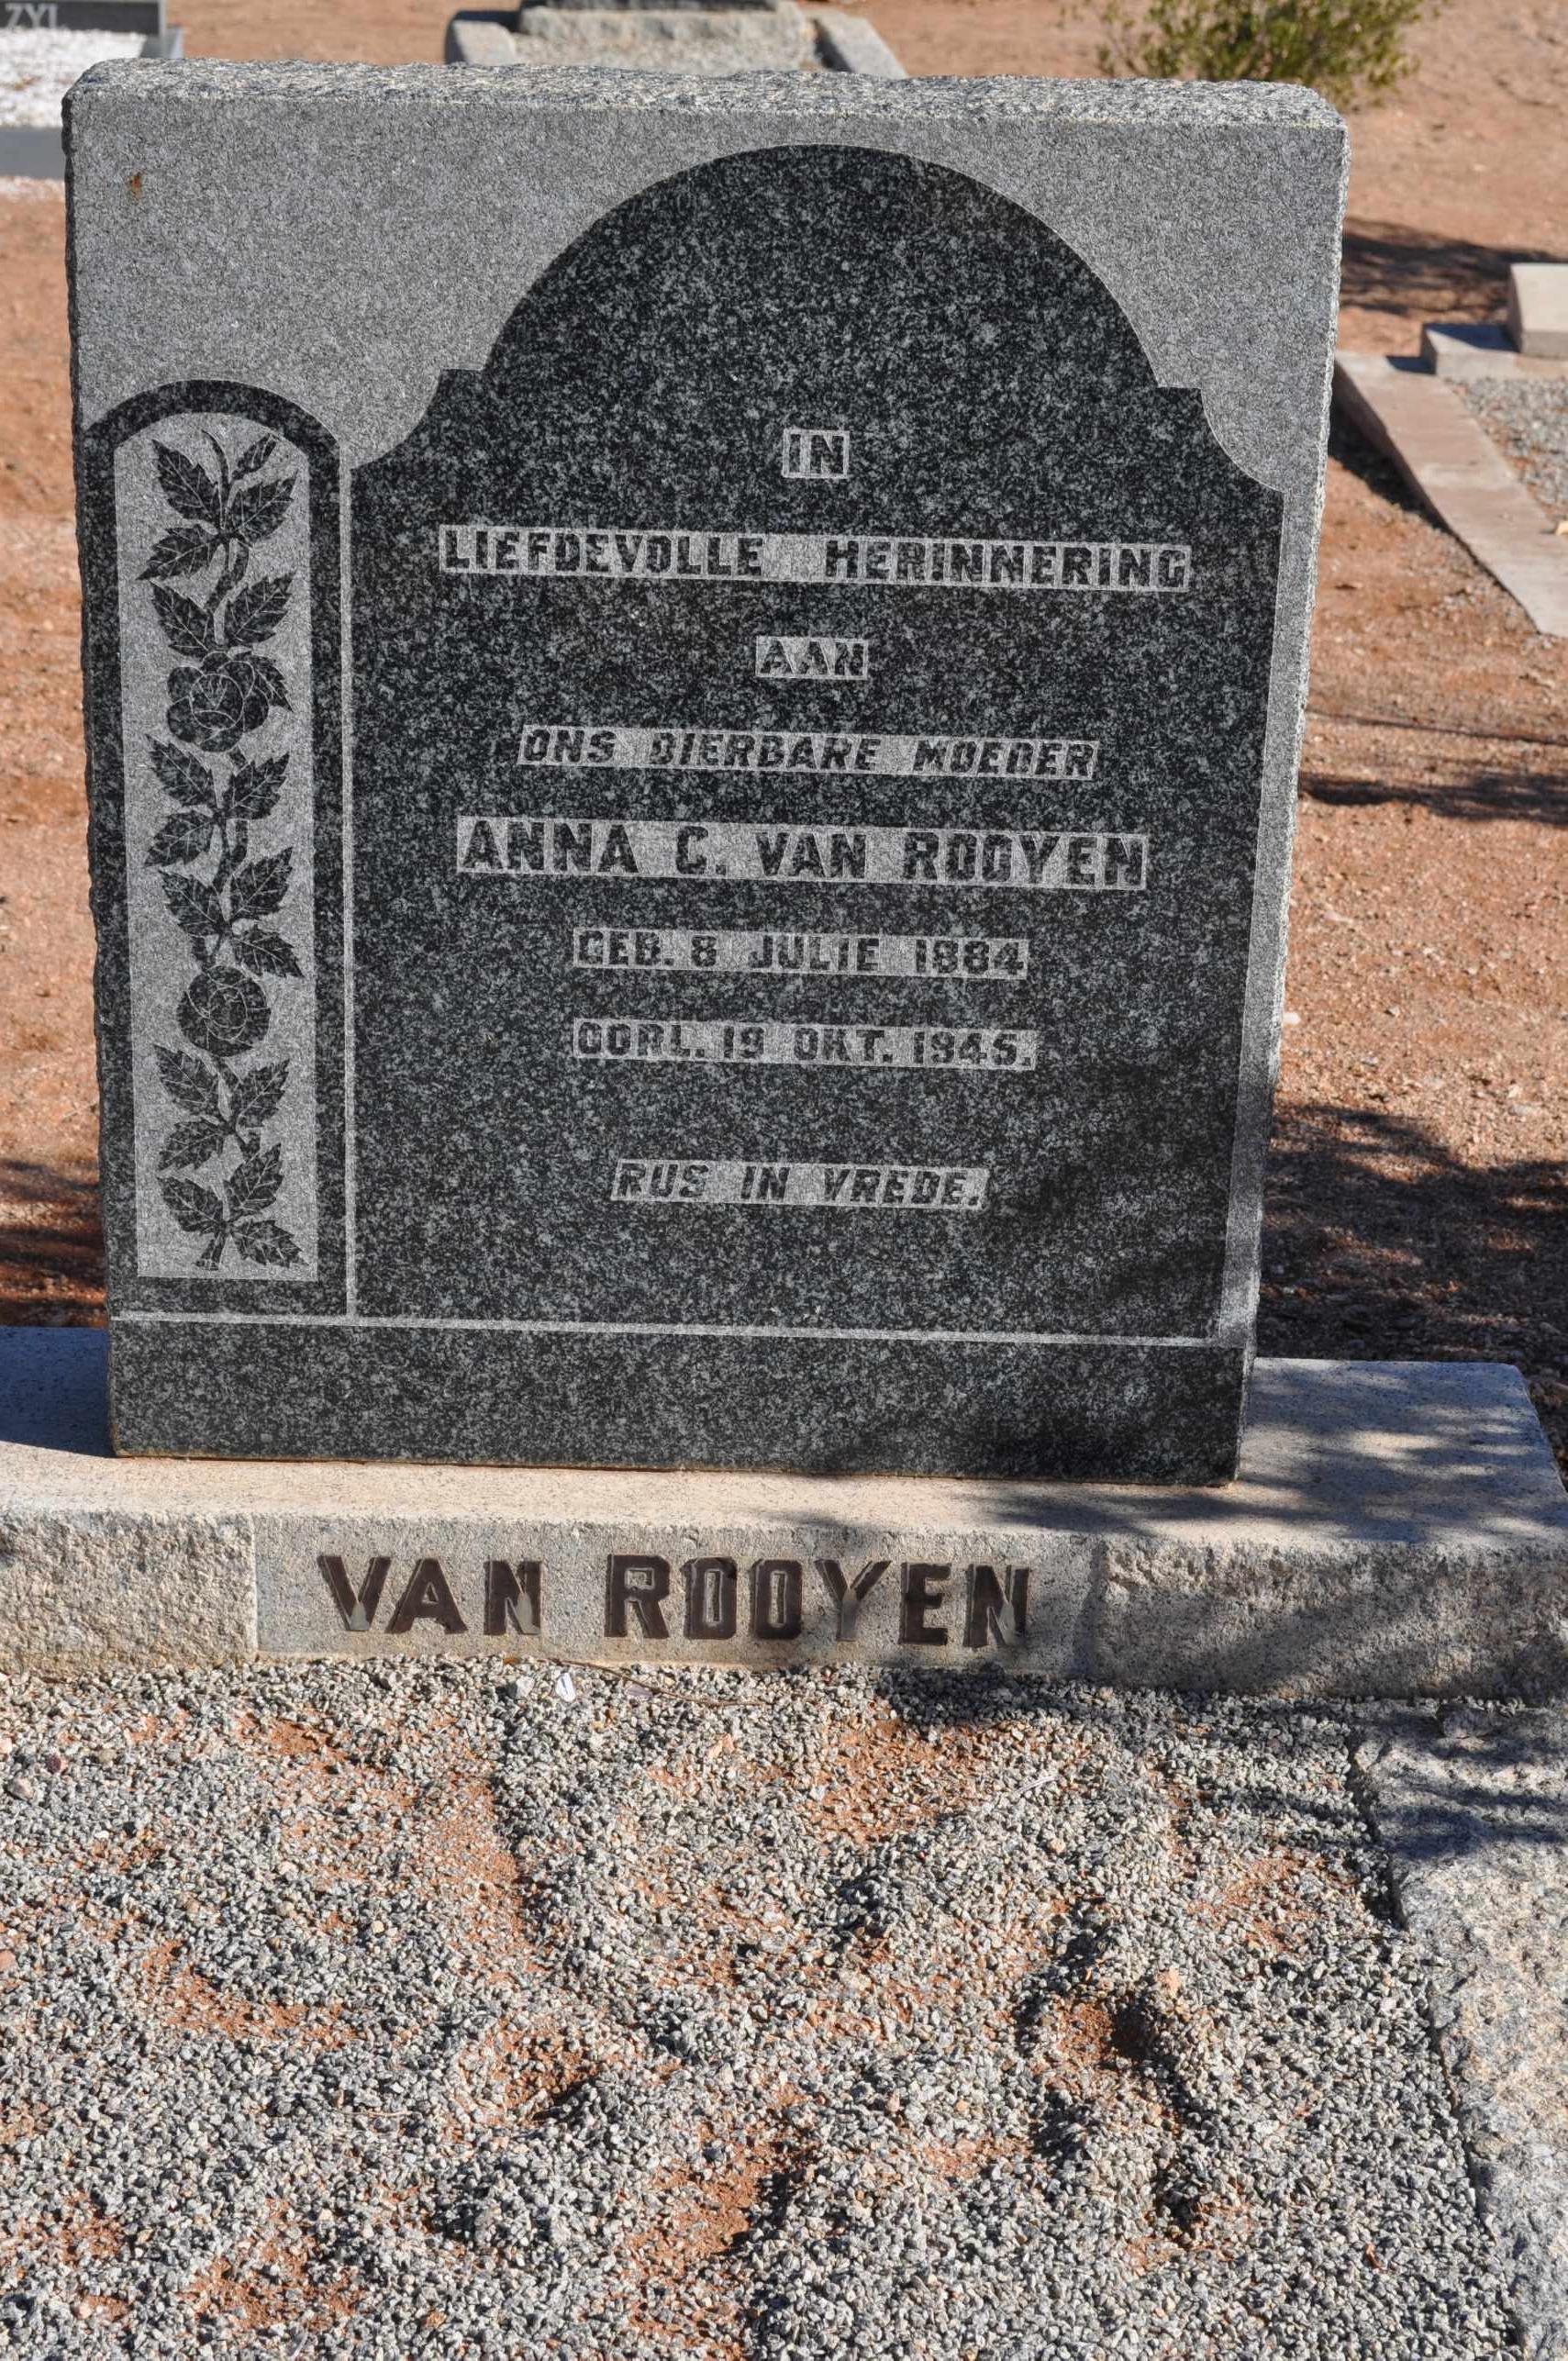 Van Rooyen, Anna born 08 July 1884 died 19 October 1945